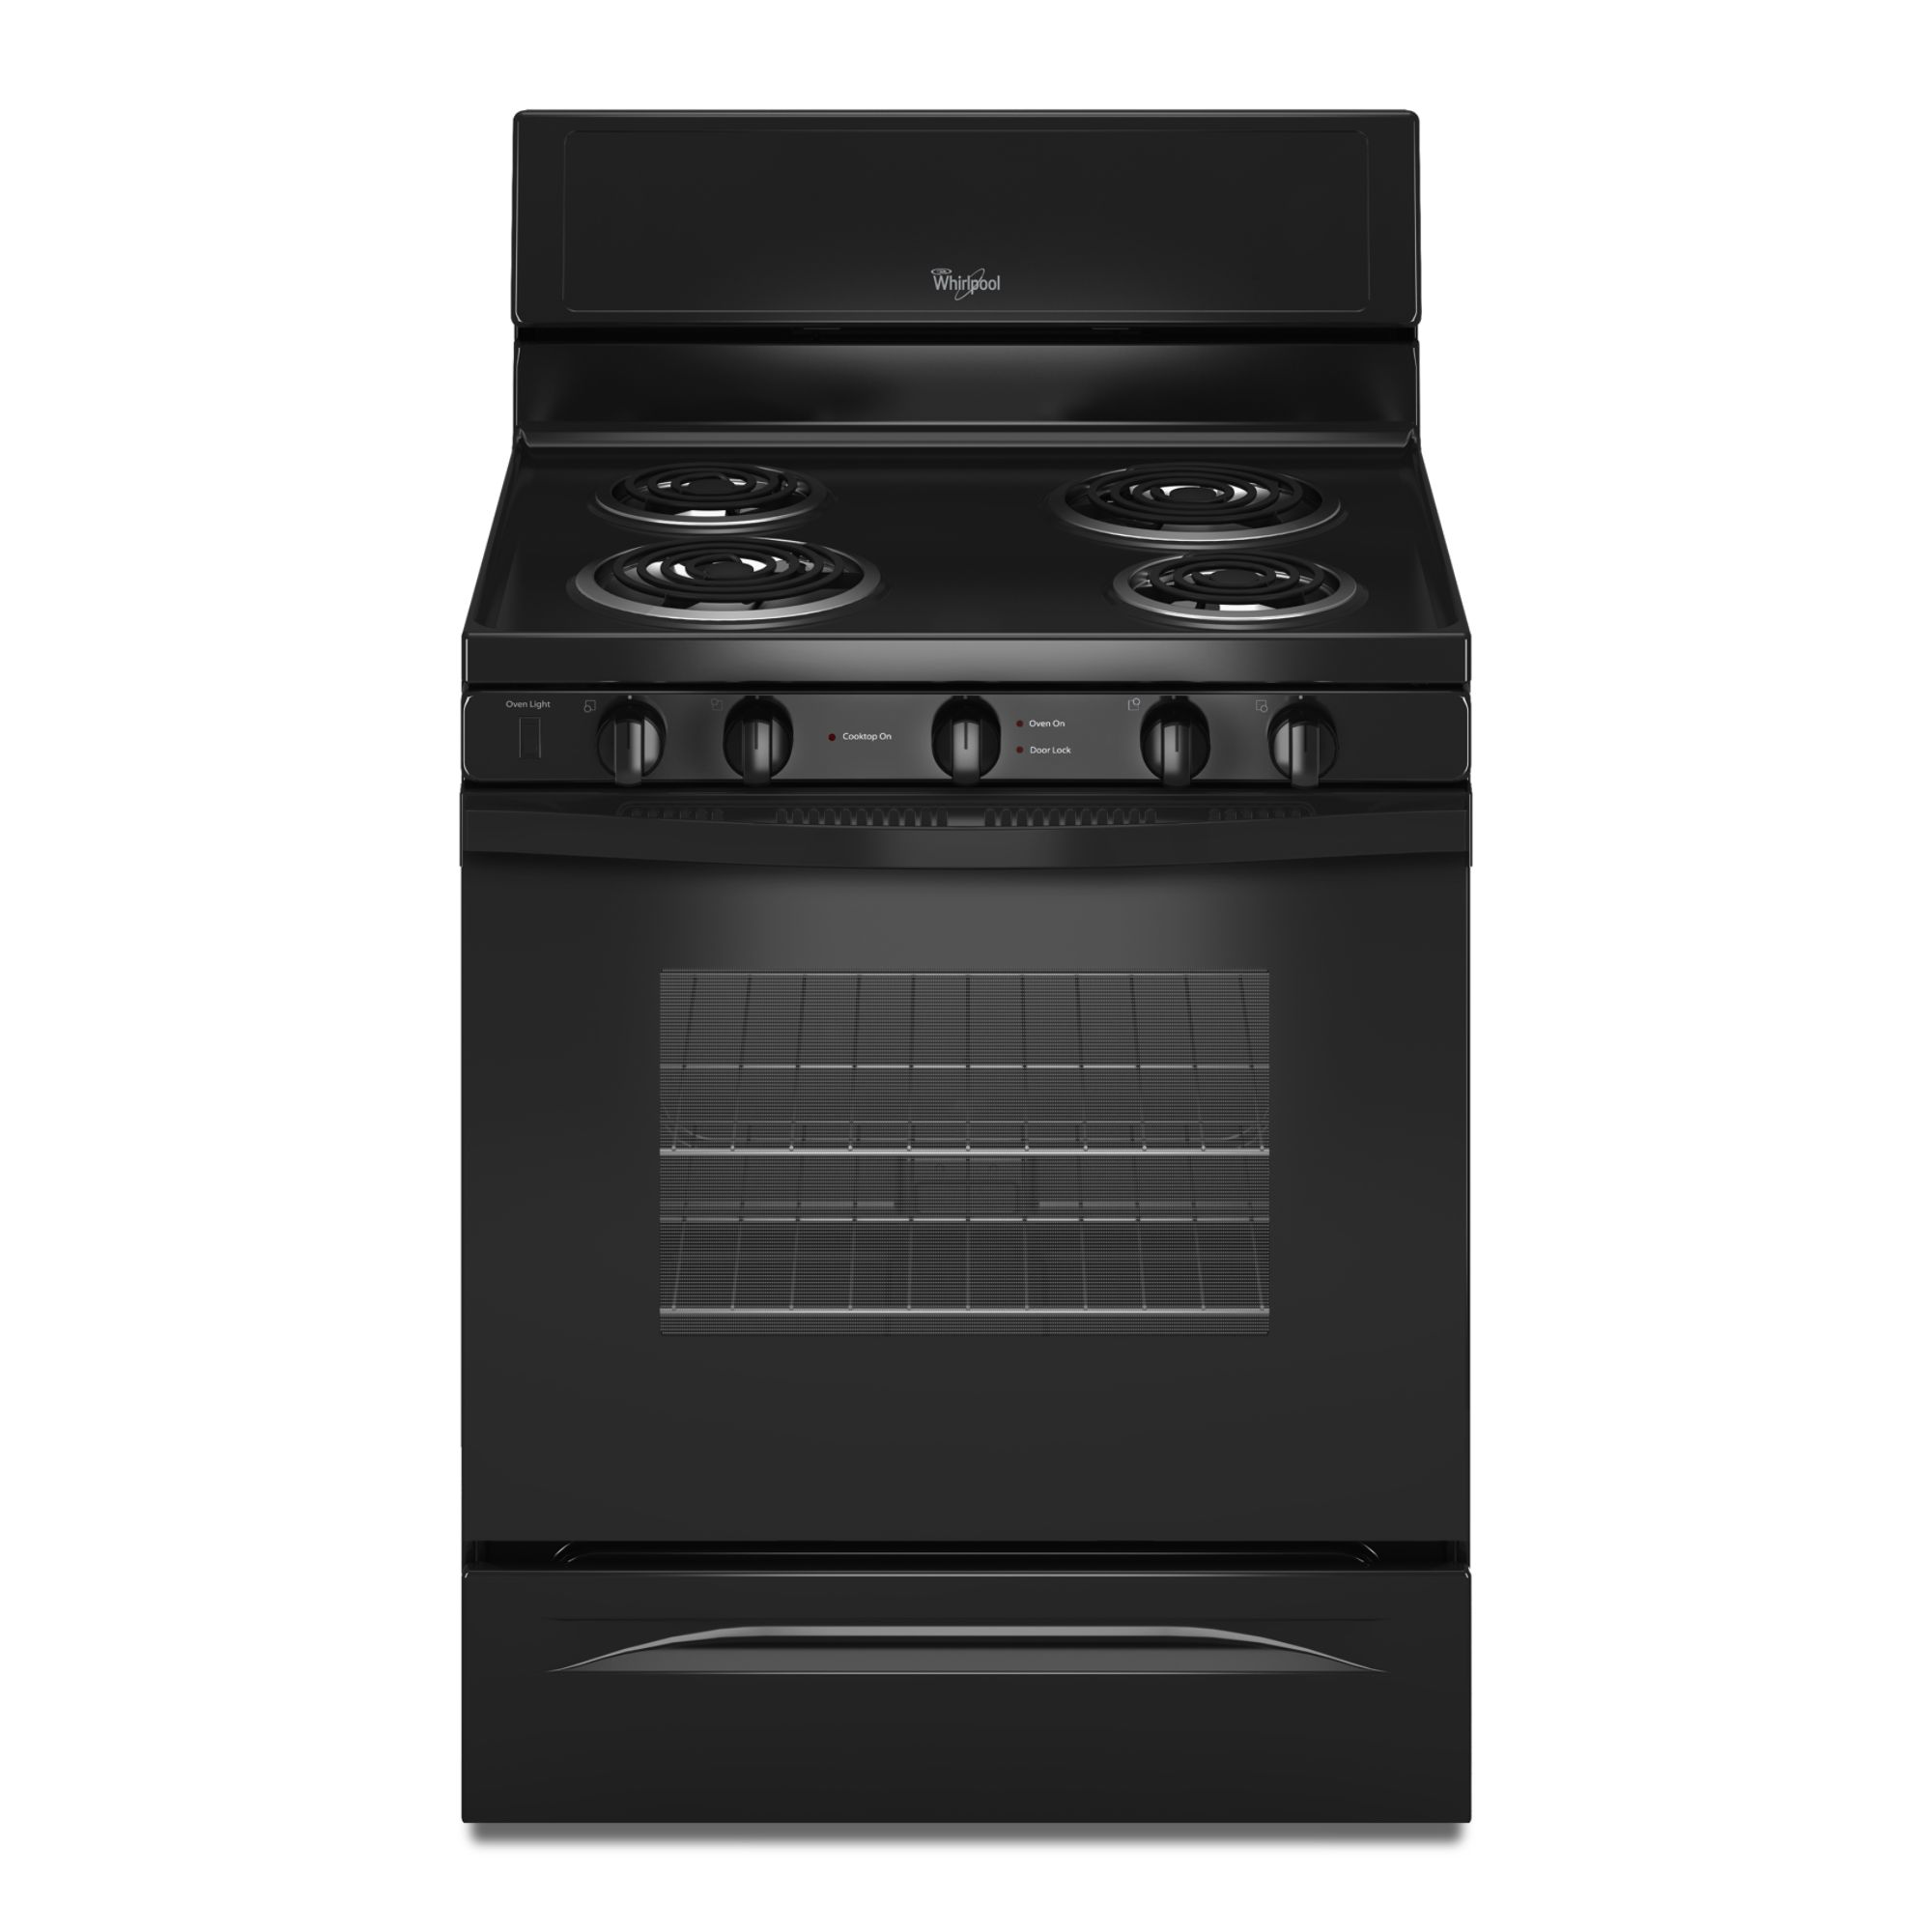 4-8-cu-ft-Electric-Range-w-Self-Cleaning-Oven-Black